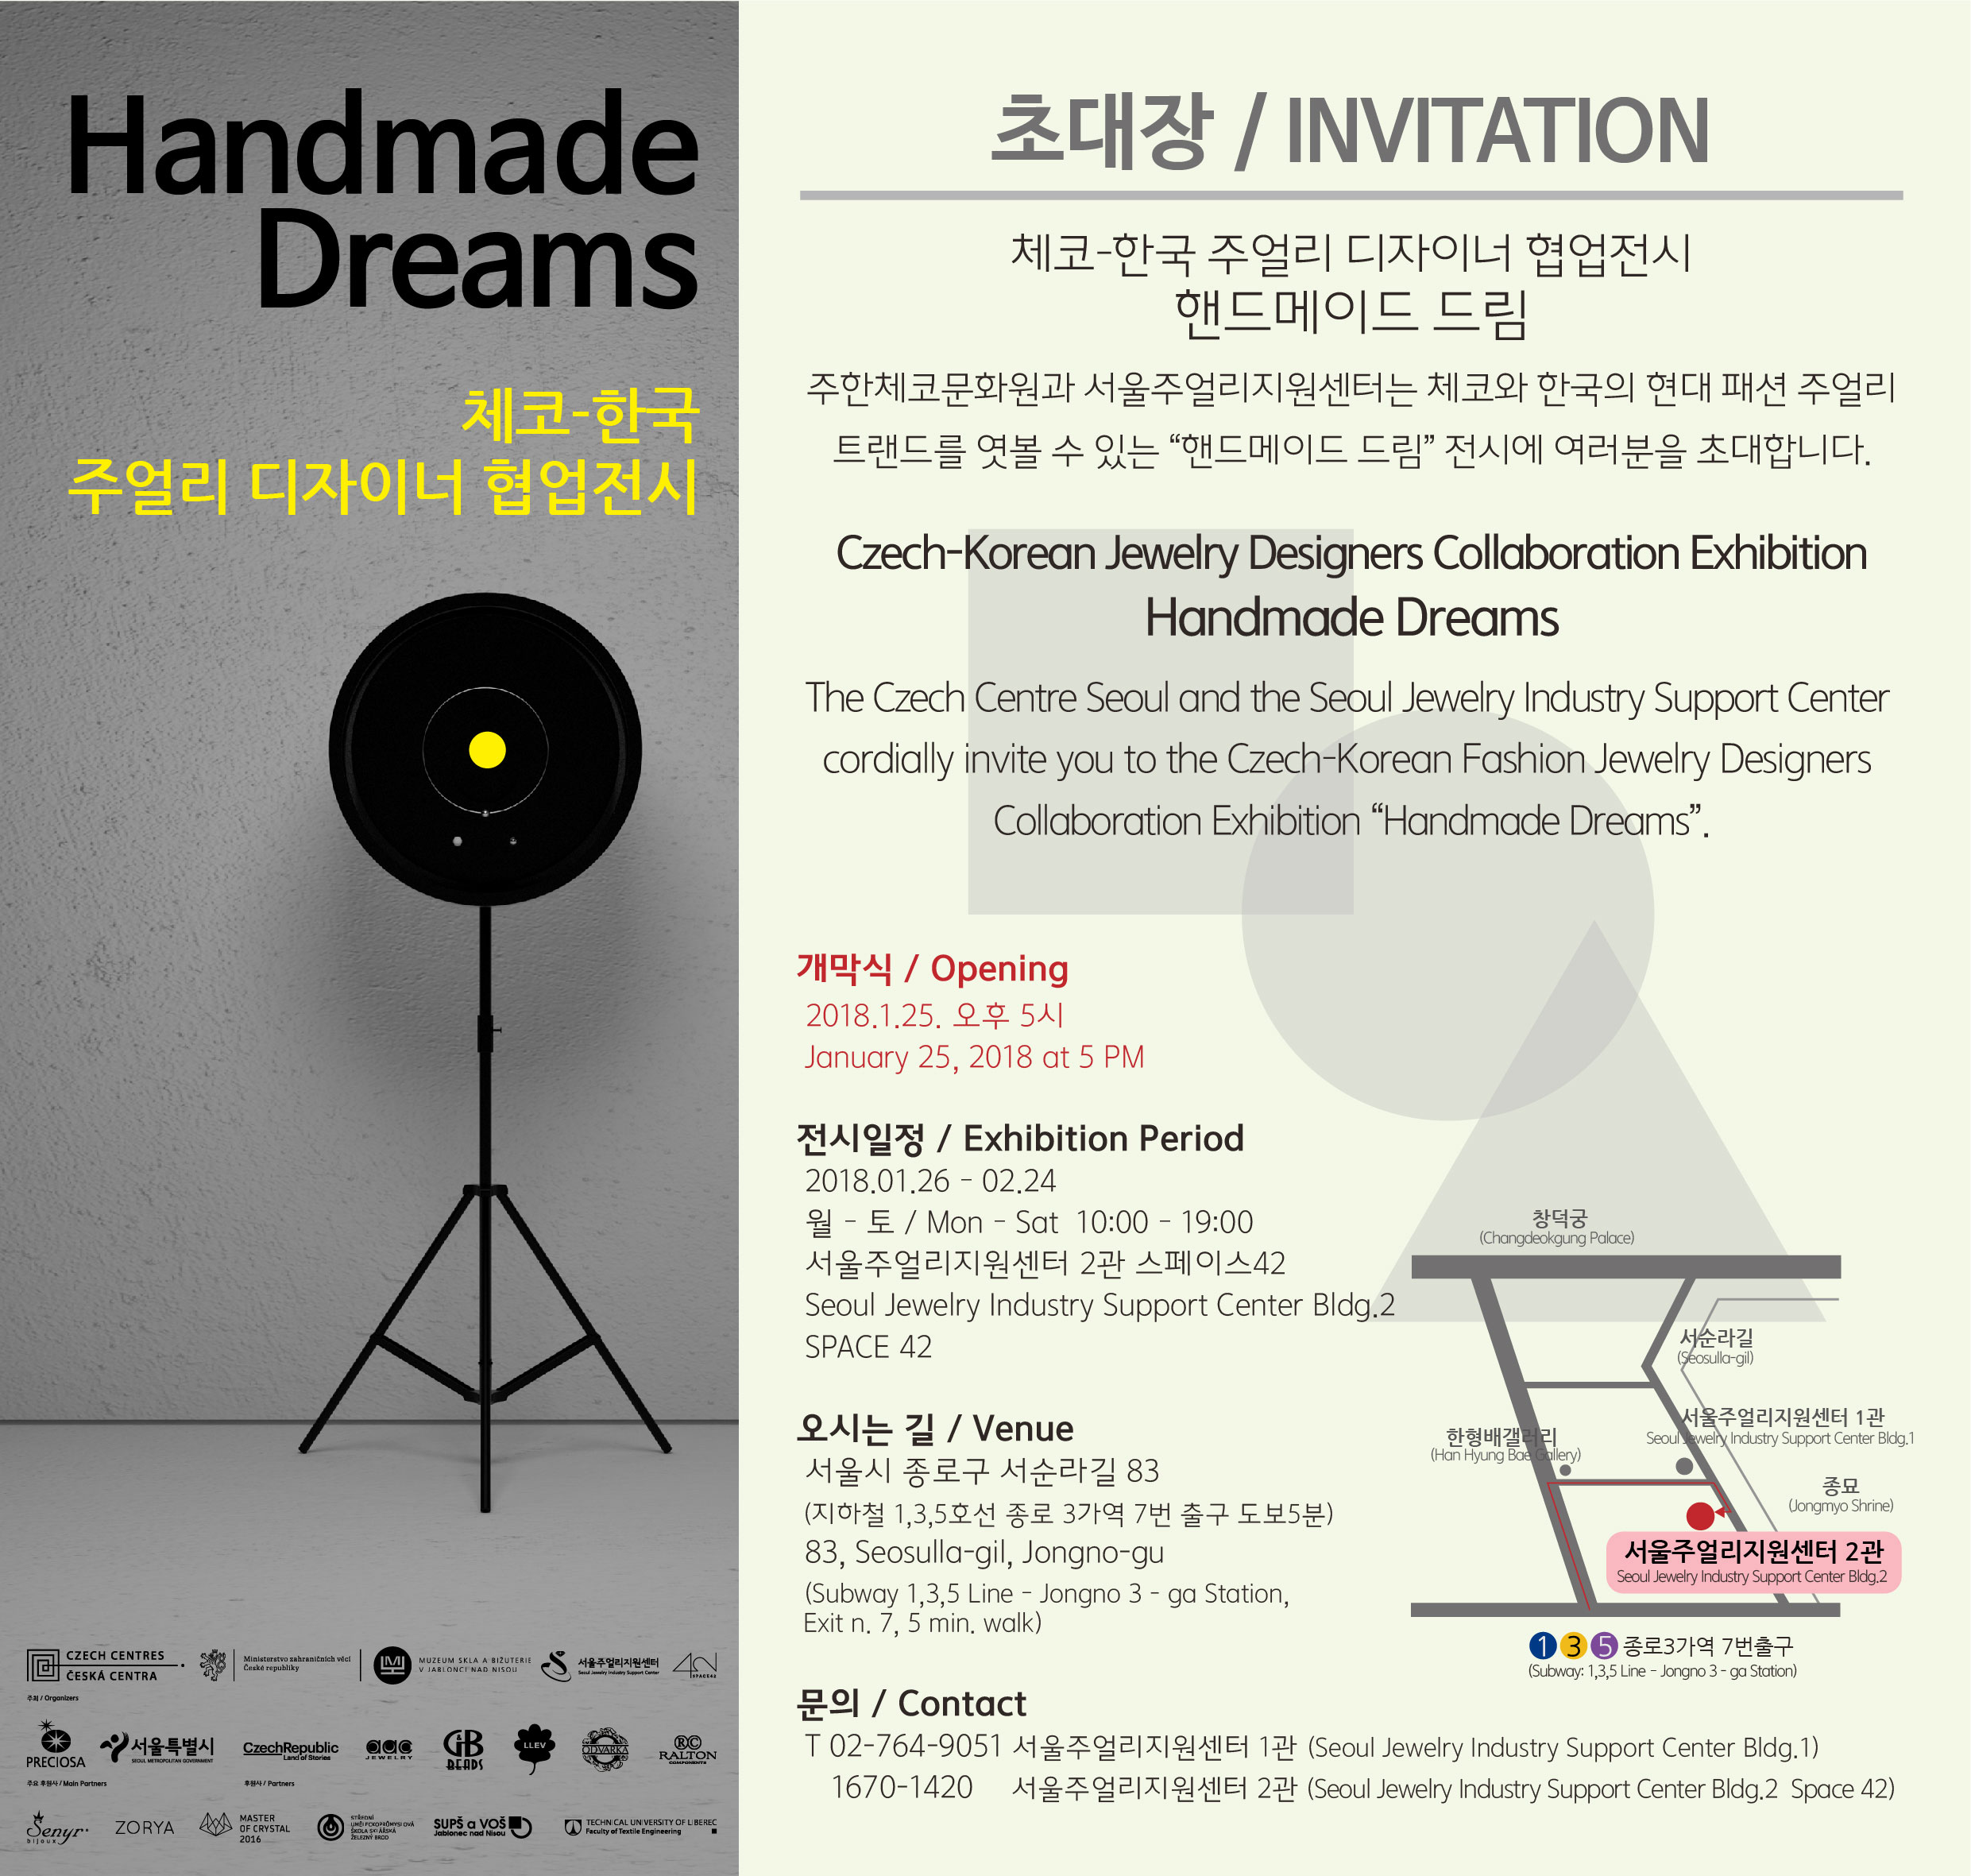 Czech-Korean Jewelry Designers Collaboration Exhibition Handmade Dreams